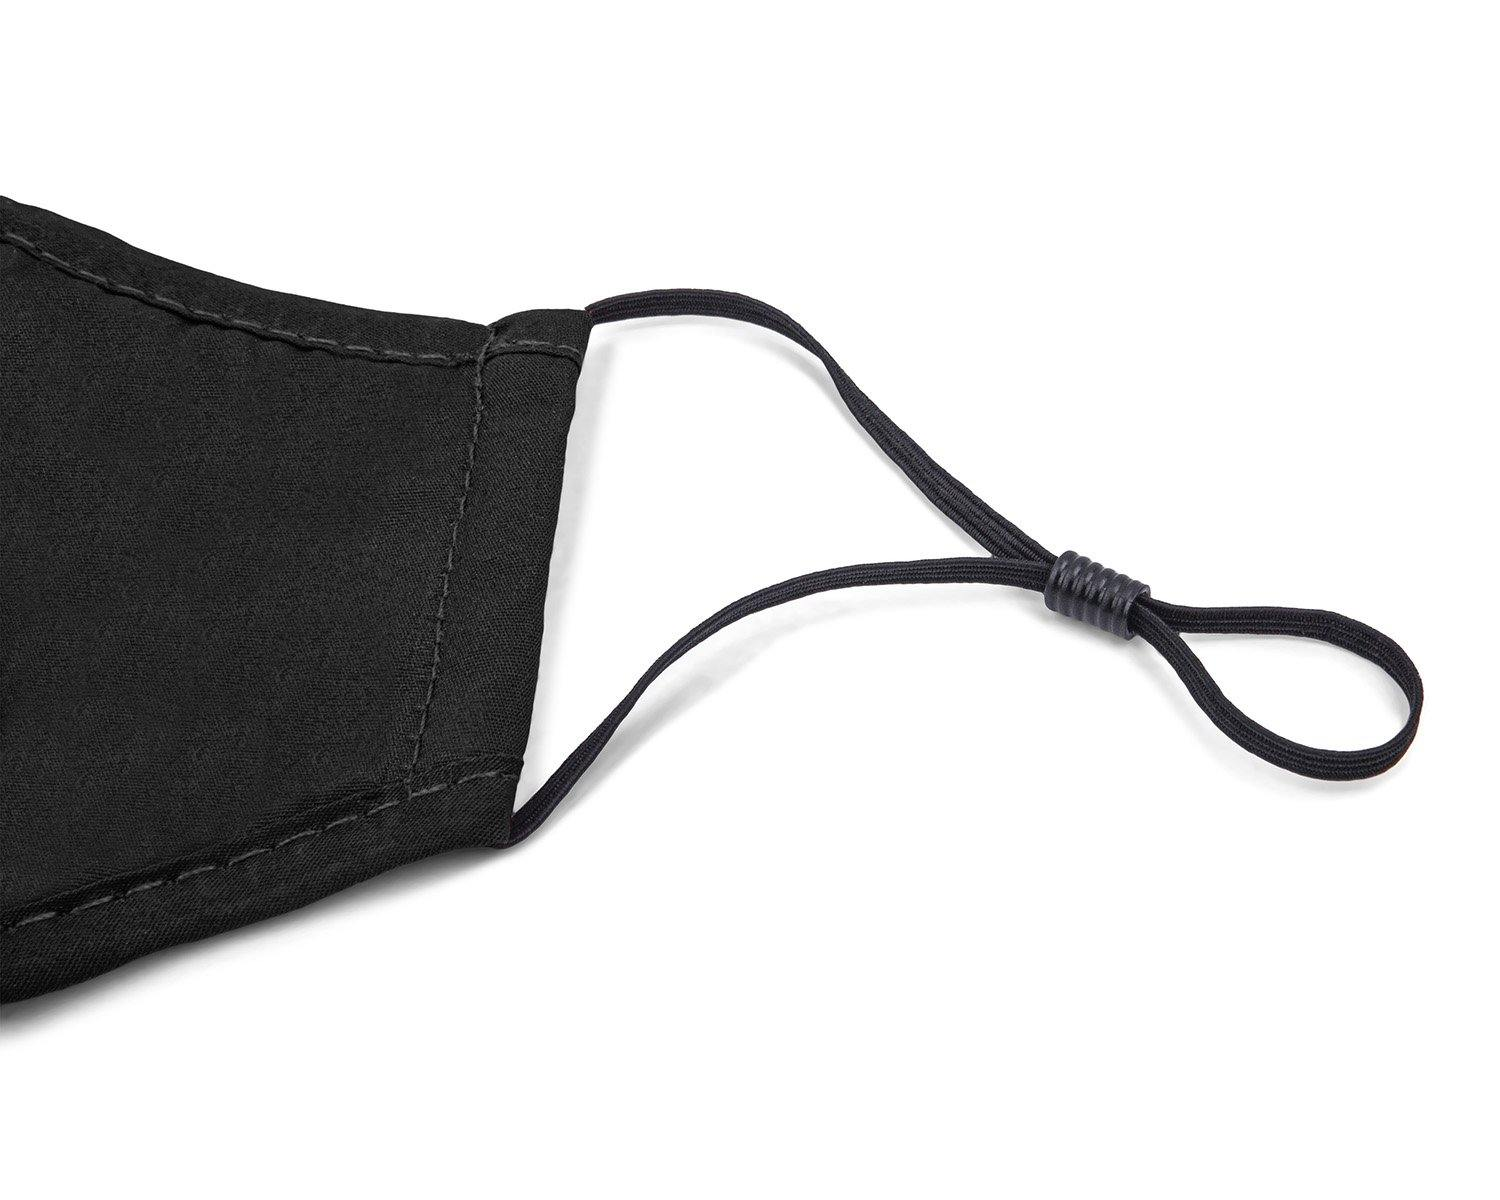 REUSABLE COTTON FACE MASK | SET OF 2 | BLACK.